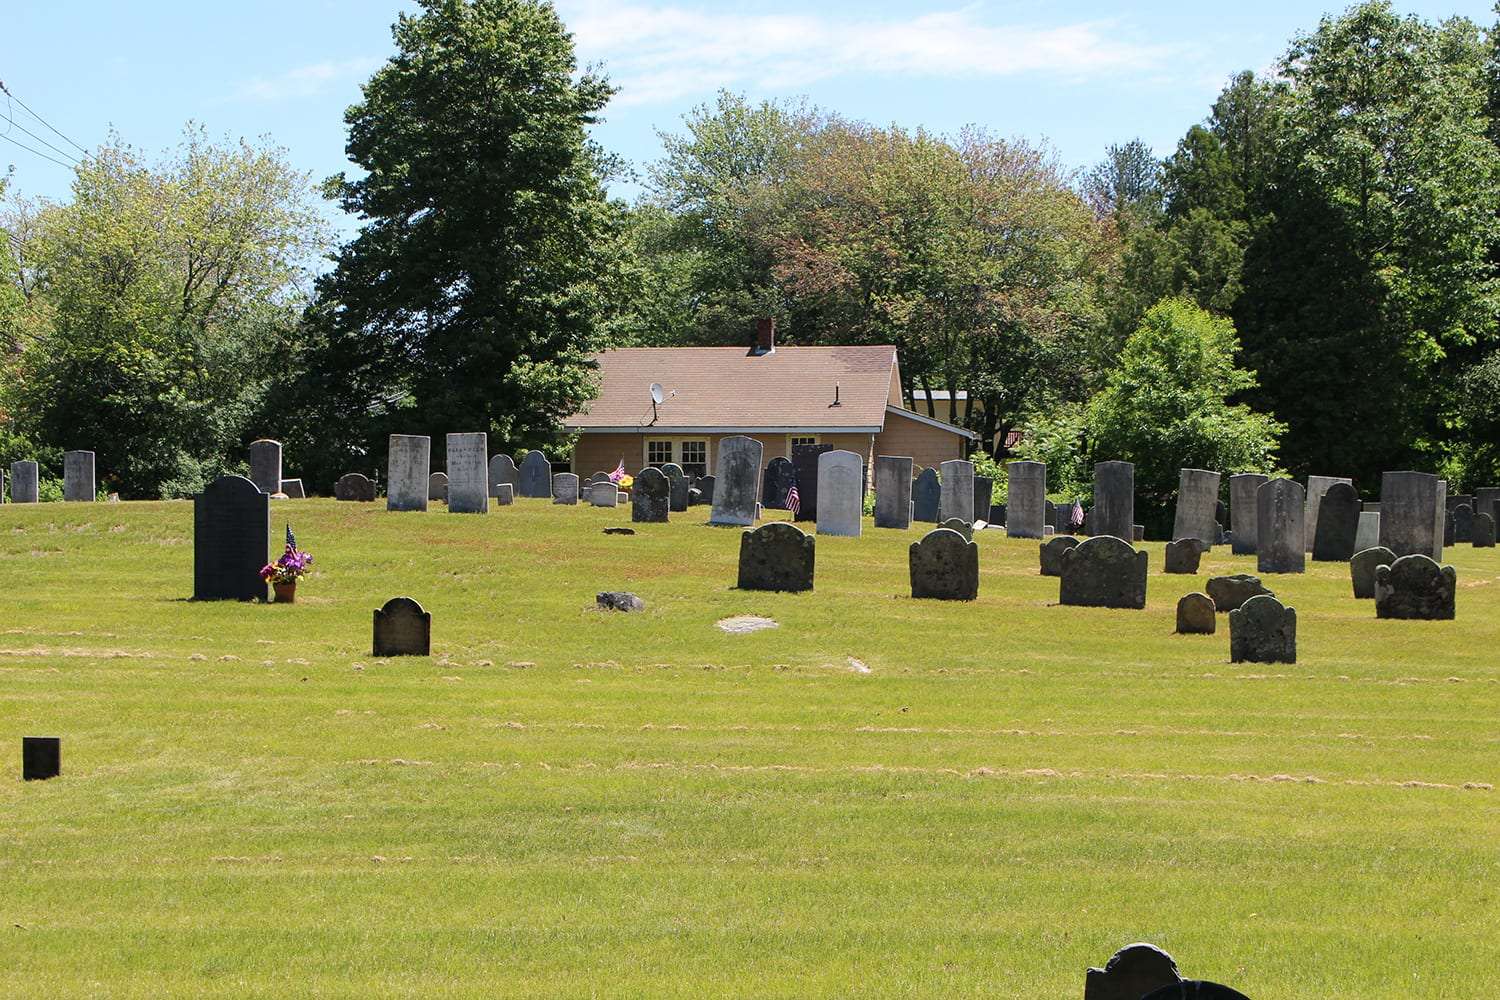 Salisbury Old Burying Ground